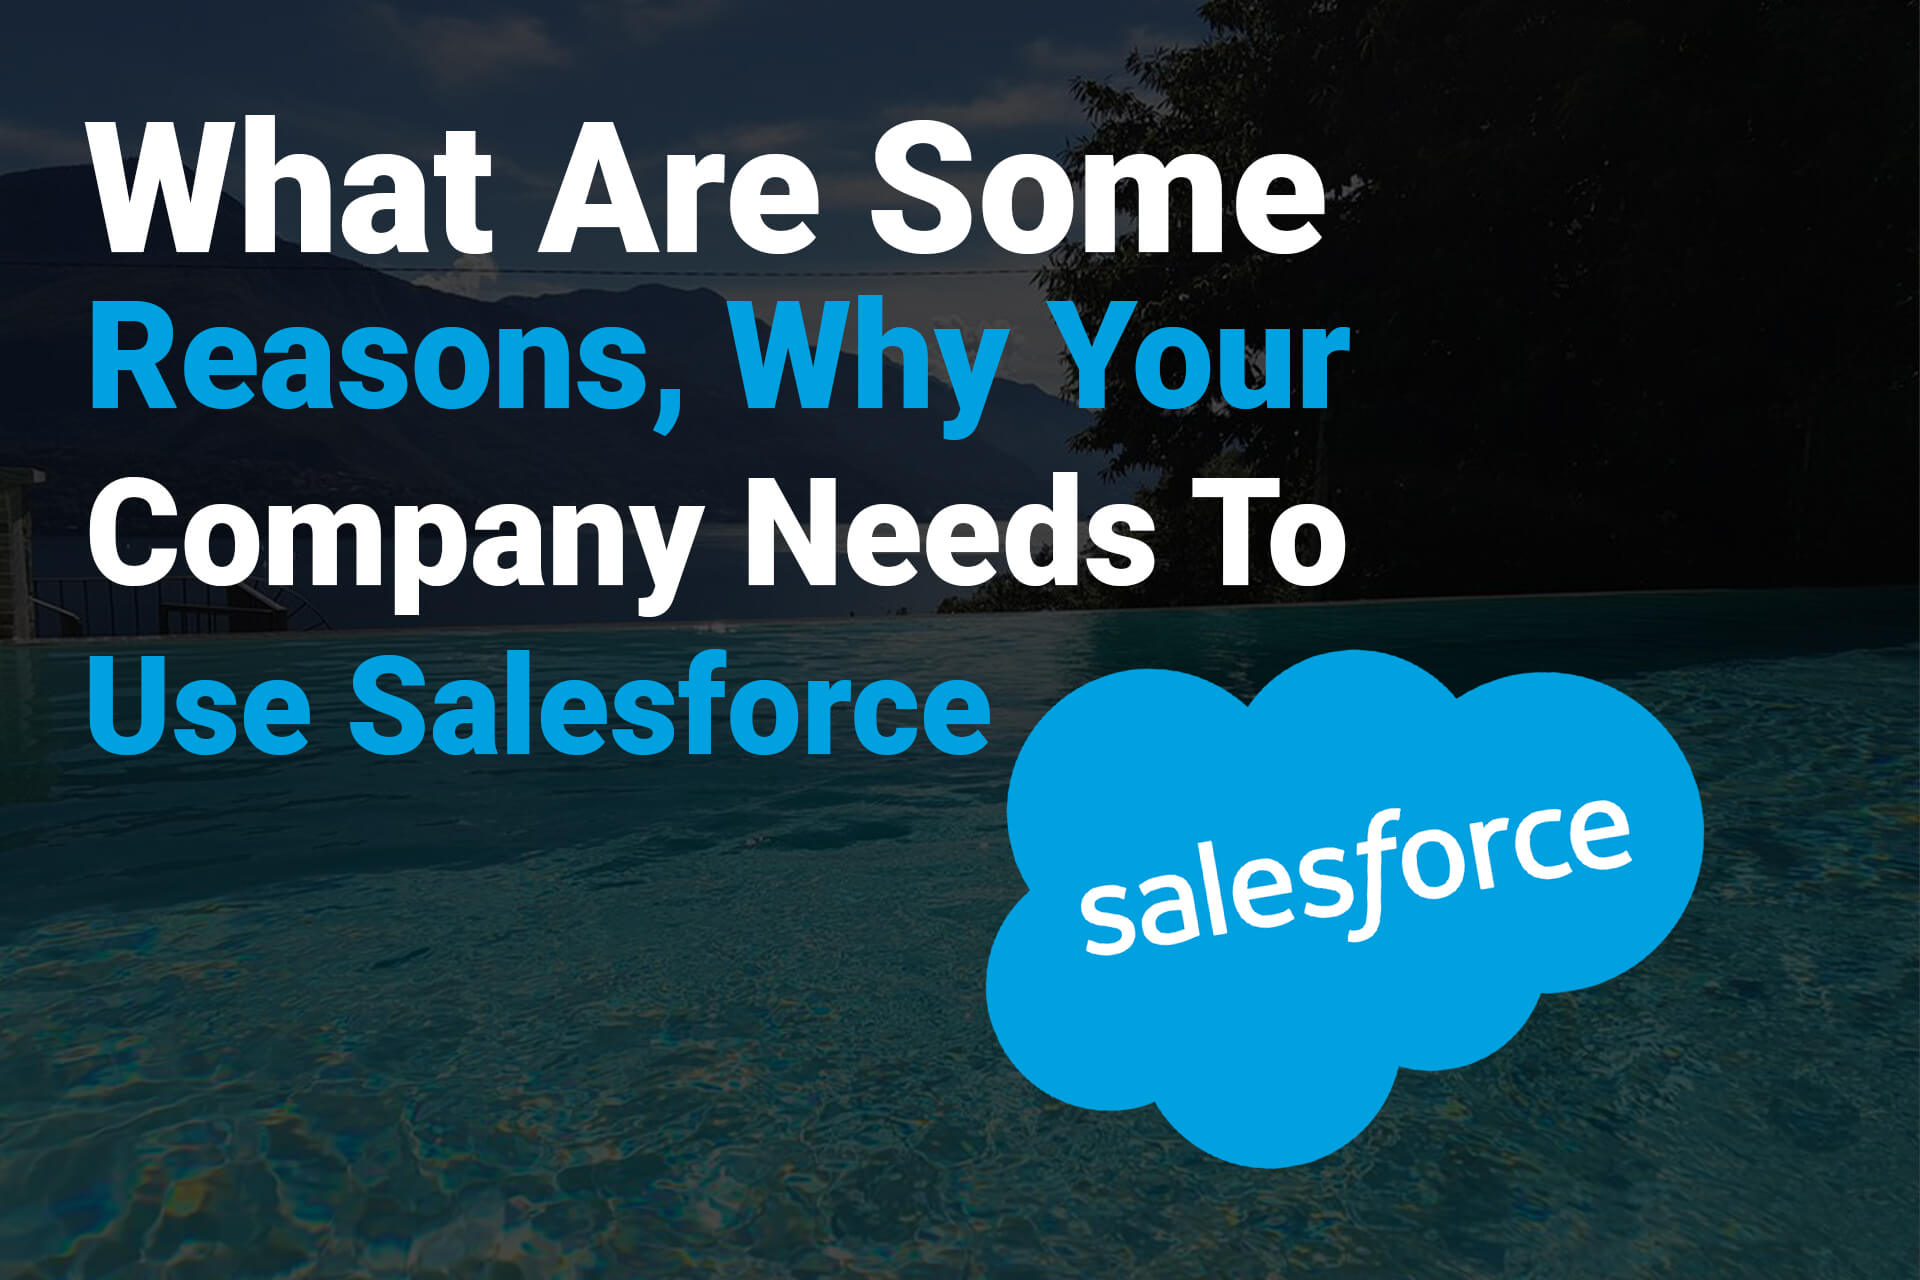 What Are Some Reasons, Why Your Company Needs To Use Salesforce?